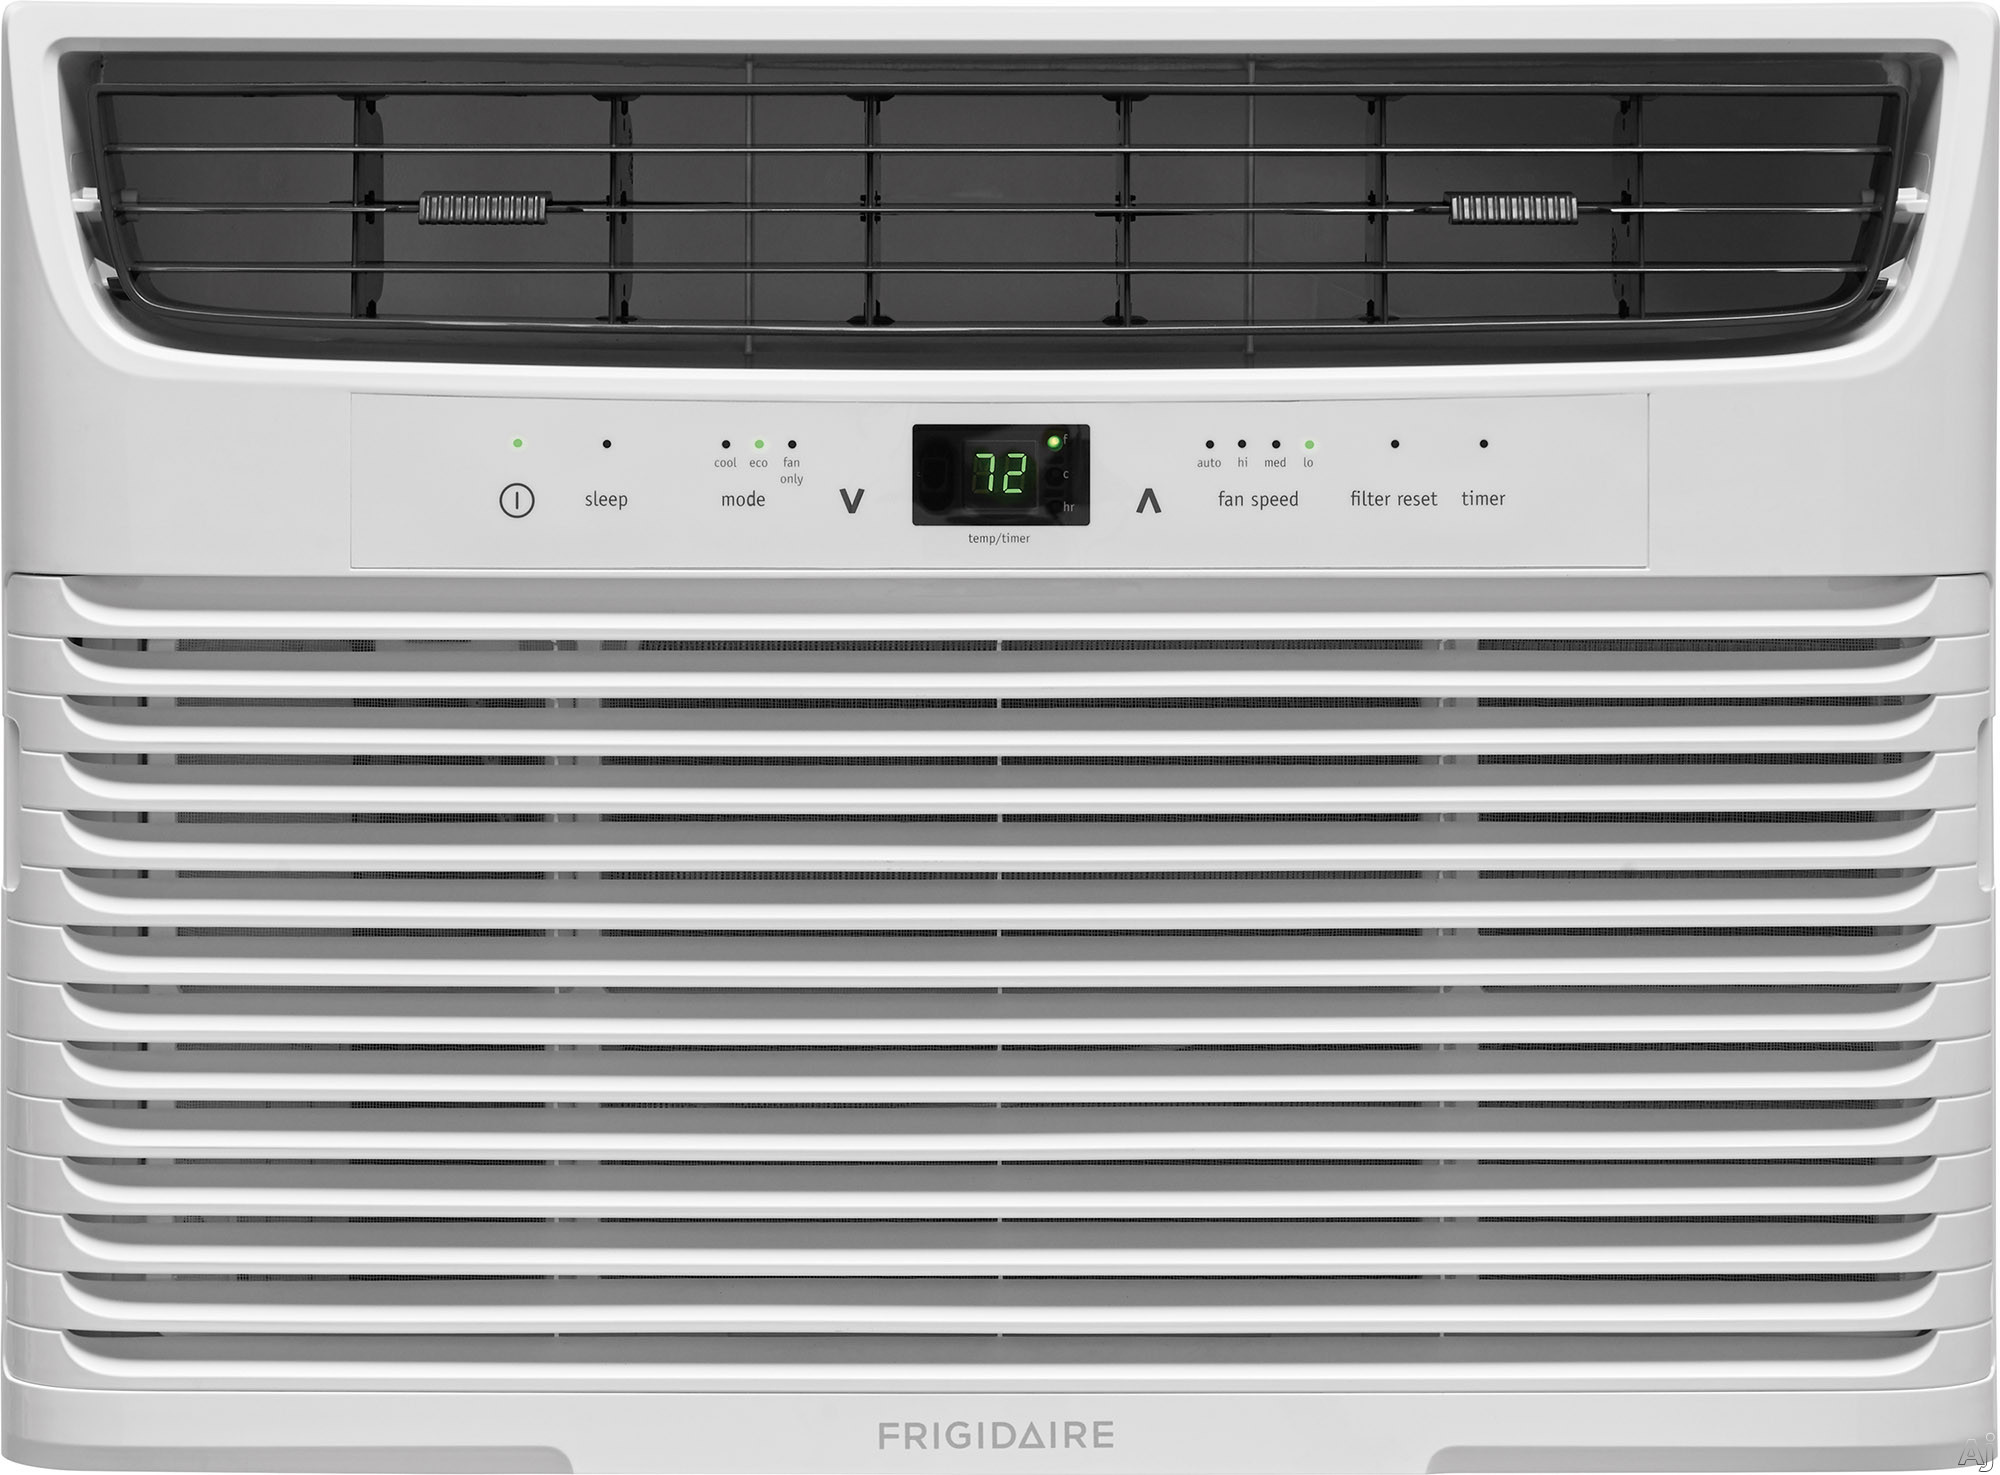 Frigidaire FFRA0822U1 8,000 BTU Room Air Conditioner with Effortless™ Temperature Control, Programmable 24-Hour Timer, SpaceWise® Adjustable Panels, Effortless™ Clean Filter, Effortless